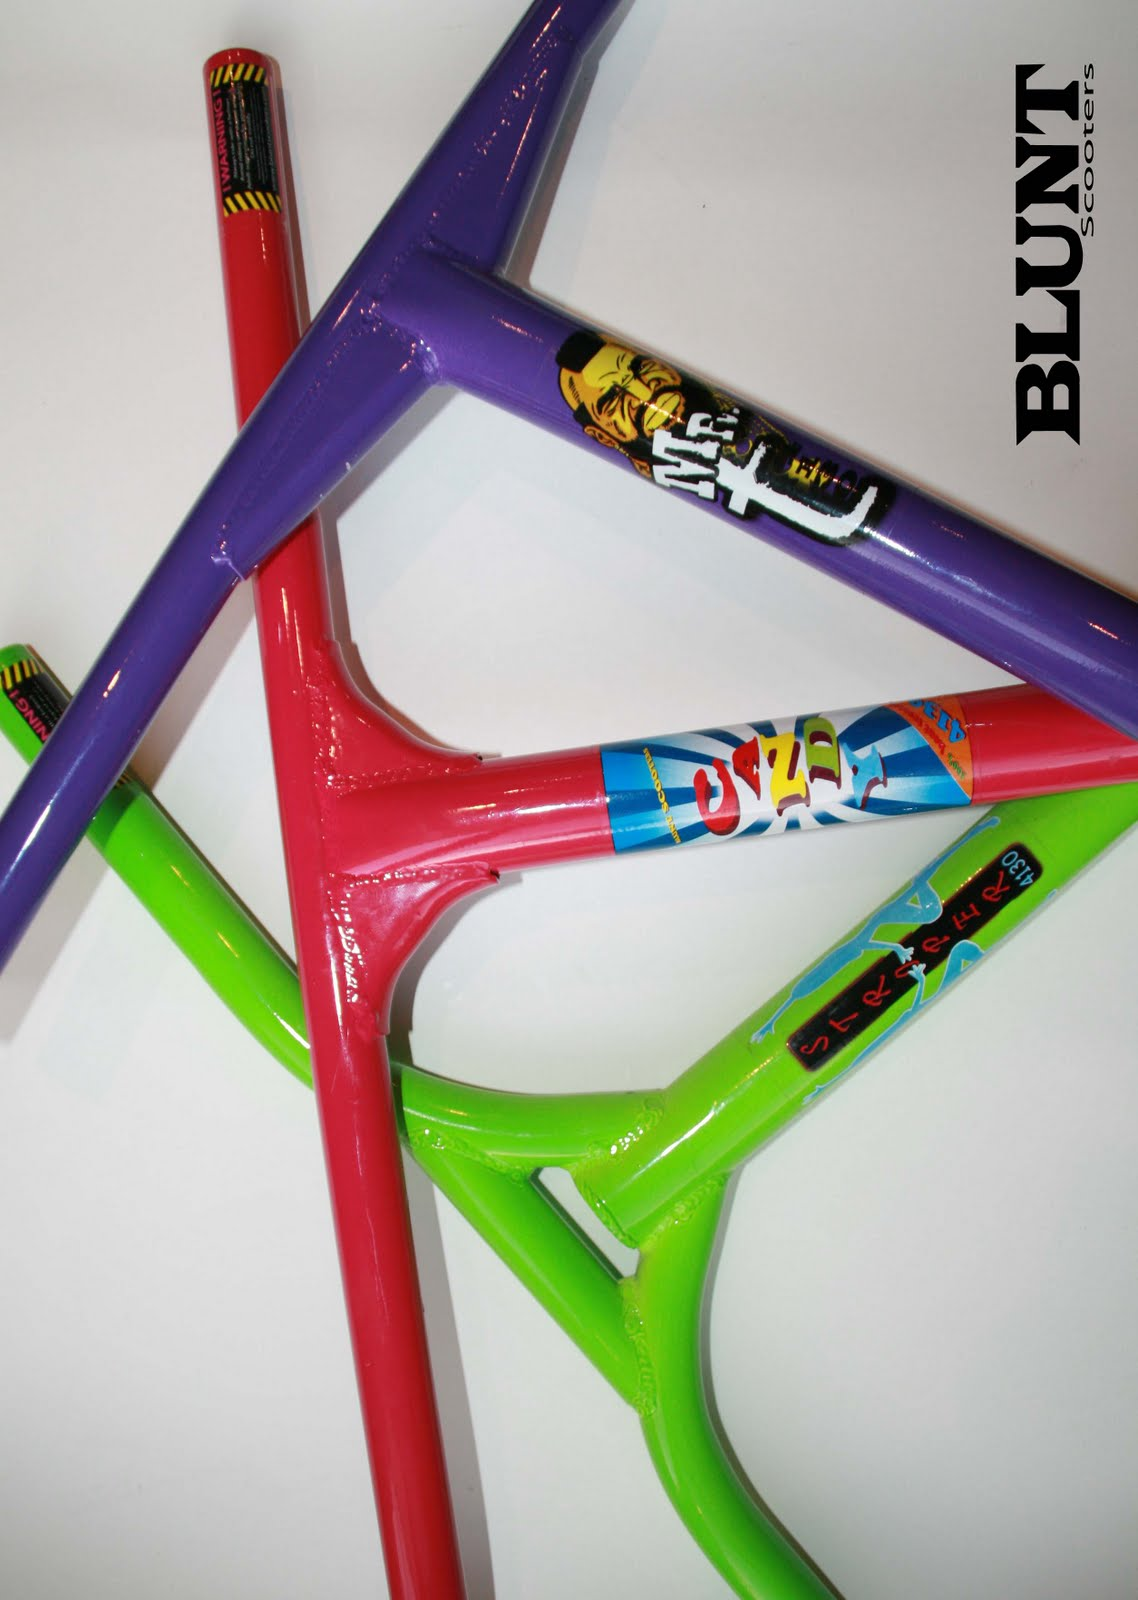 blunt scooter bars - HD1138×1600